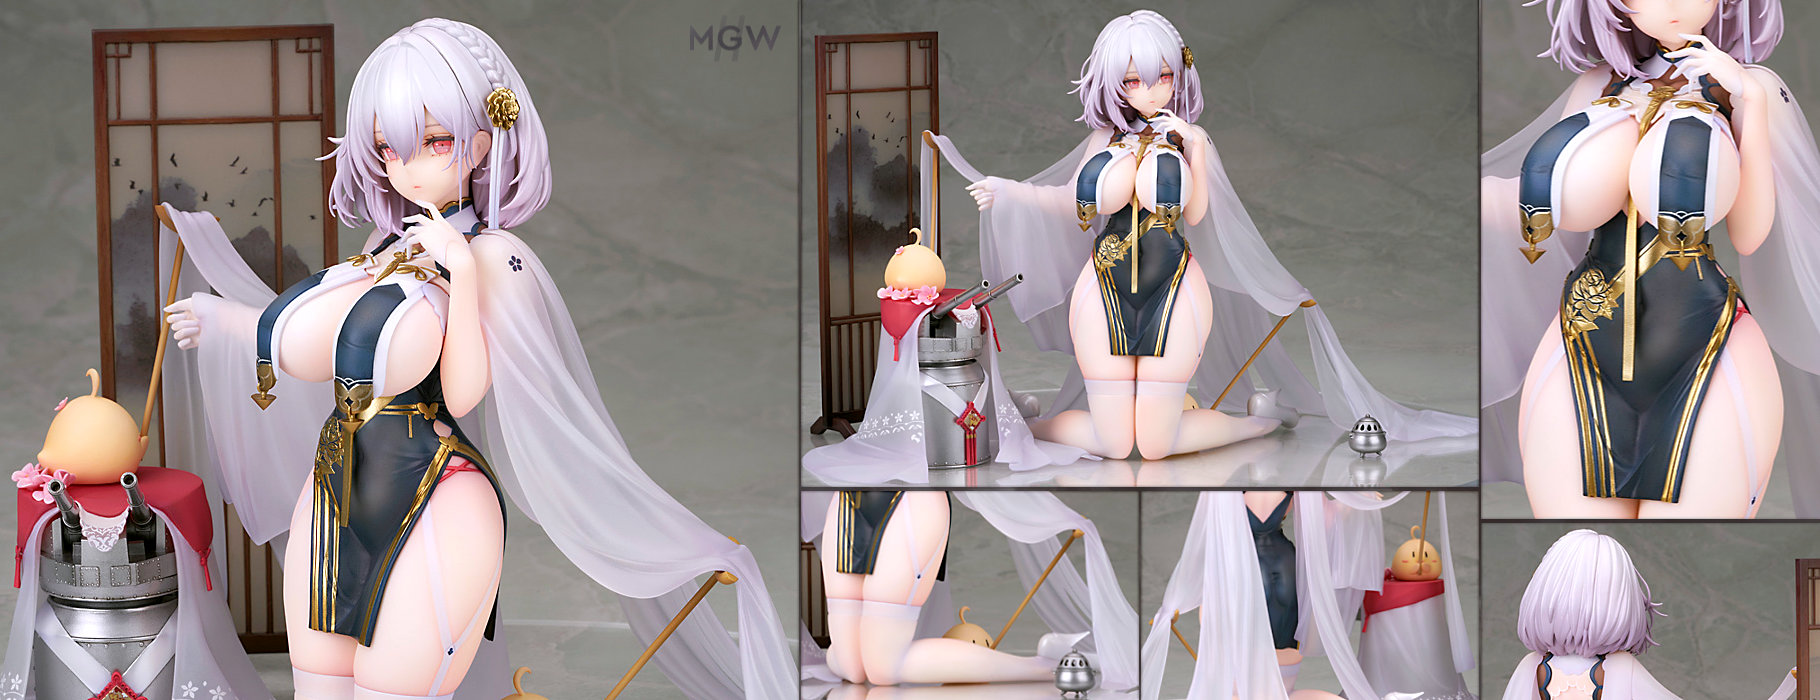 HMS Sirius Seiun Utsusu Aonami Ver. by ALTER from Azur Lane by ALTER from Azur Lane MGW Pre order Guide